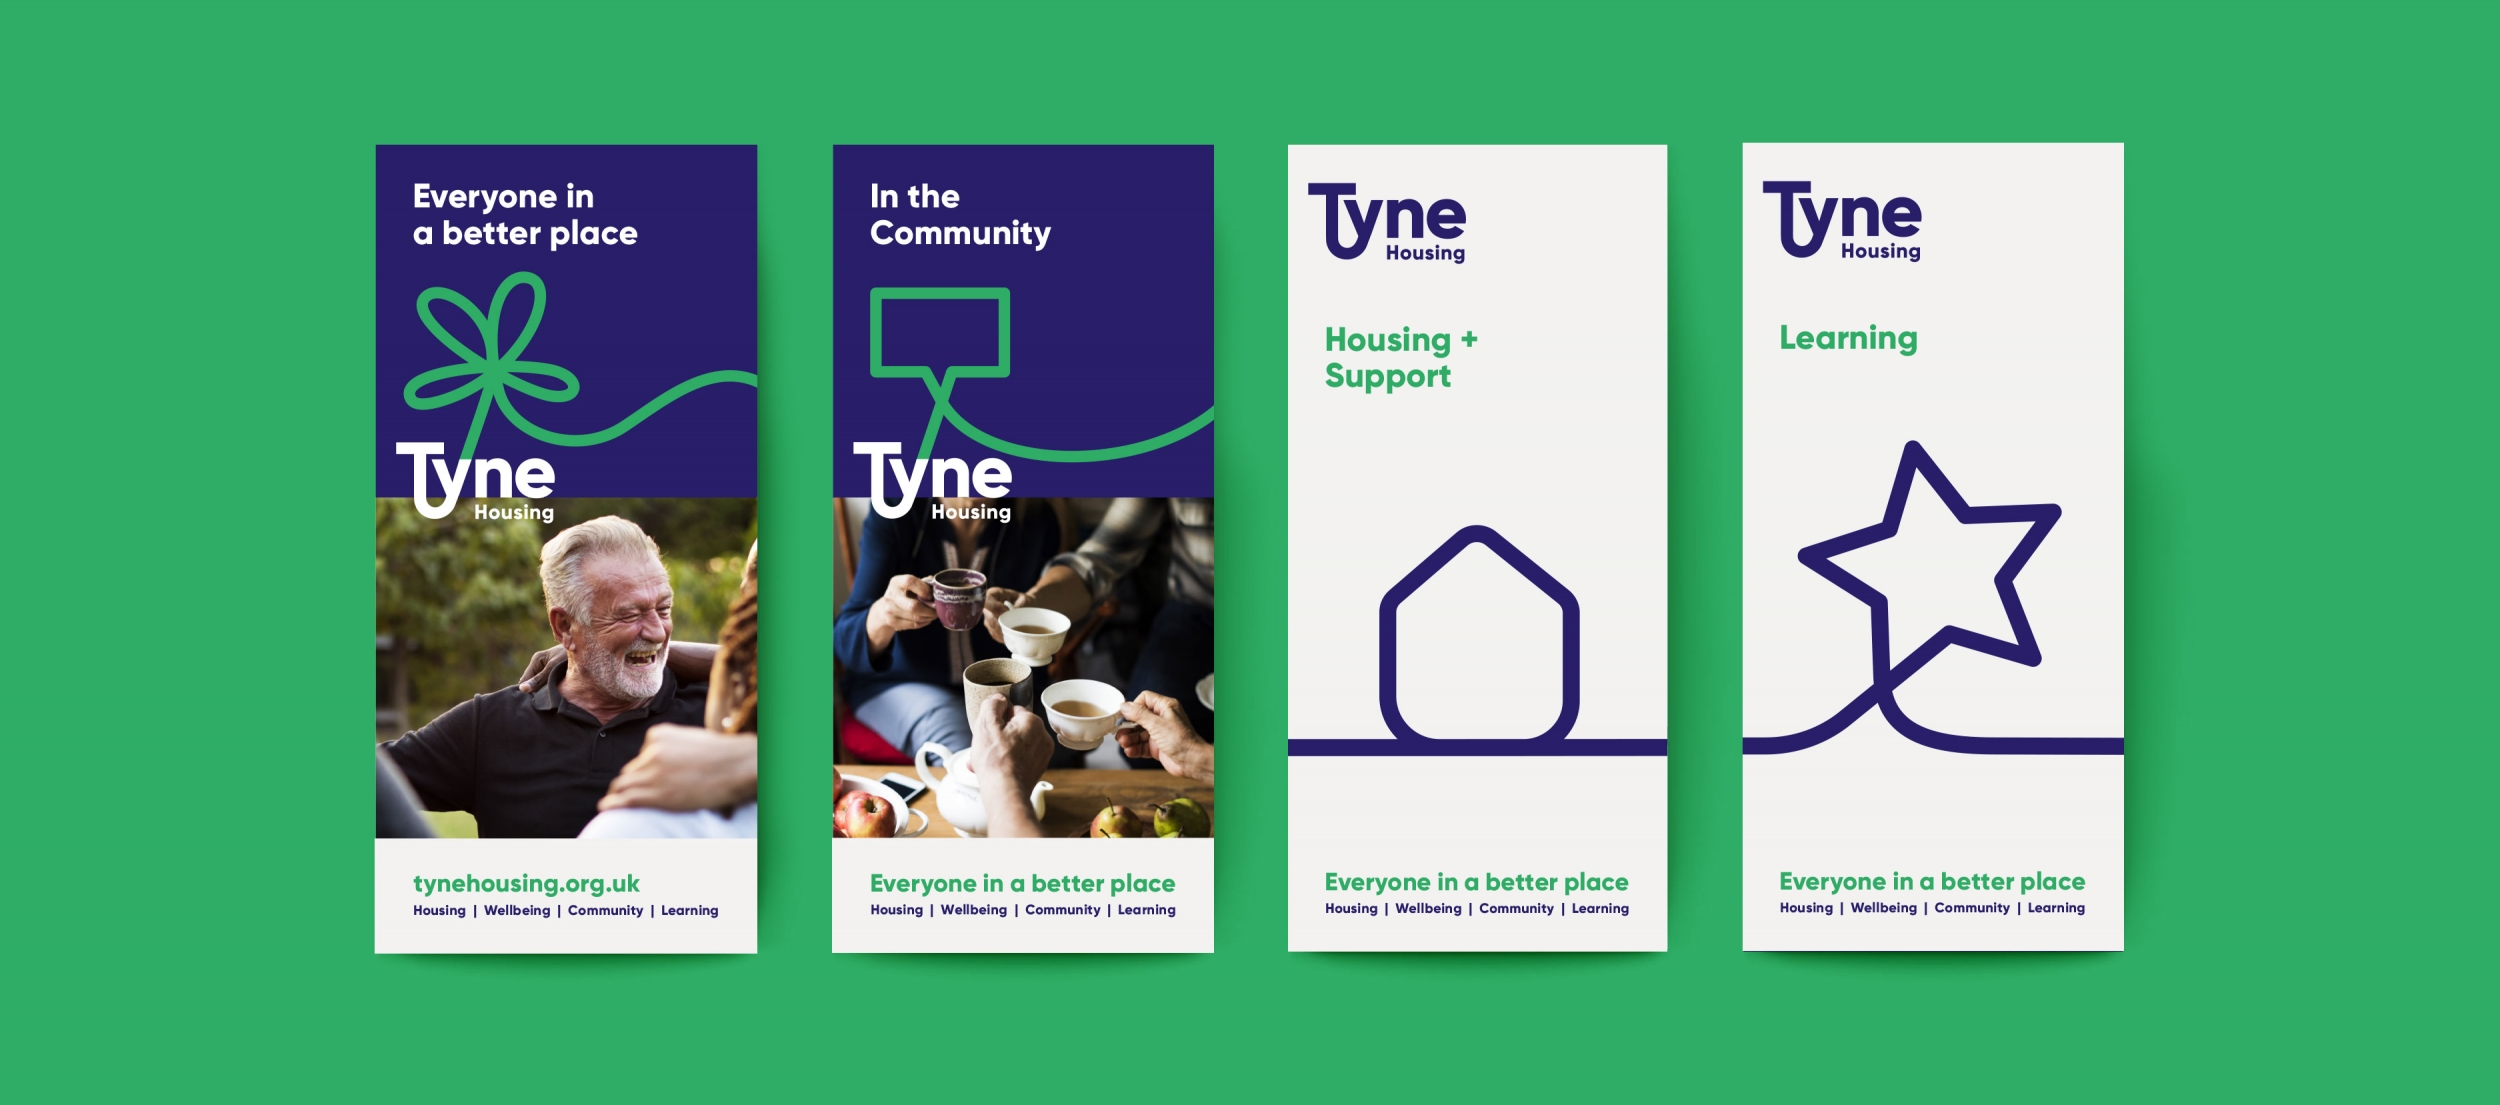 Tyne Housing association branding, leaflets and communications by Altogether Creative.